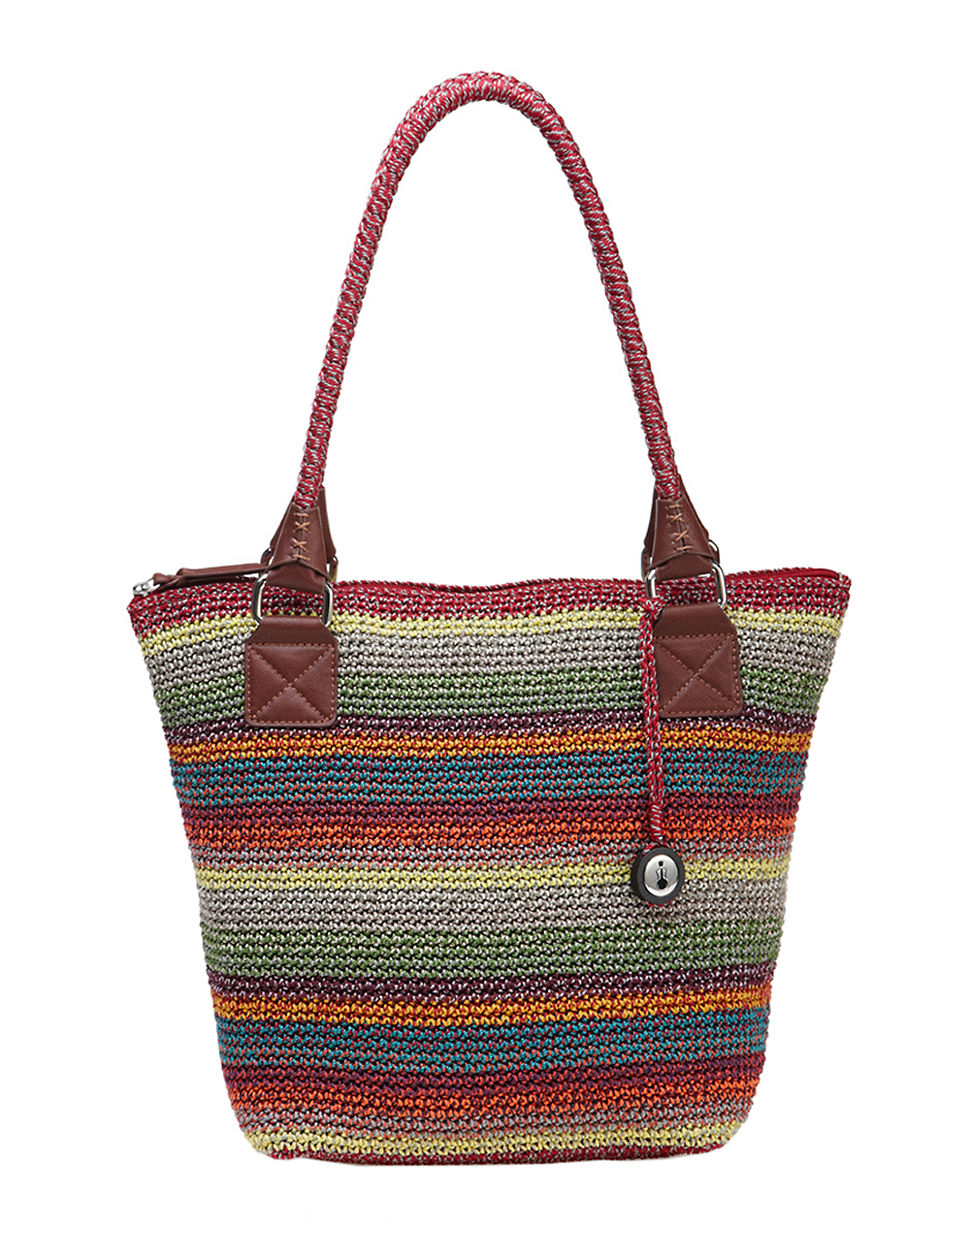 Sak Crochet Bag : The Sak Cambria Crochet Large Tote in Brown (GYPSY STRIPE) Lyst